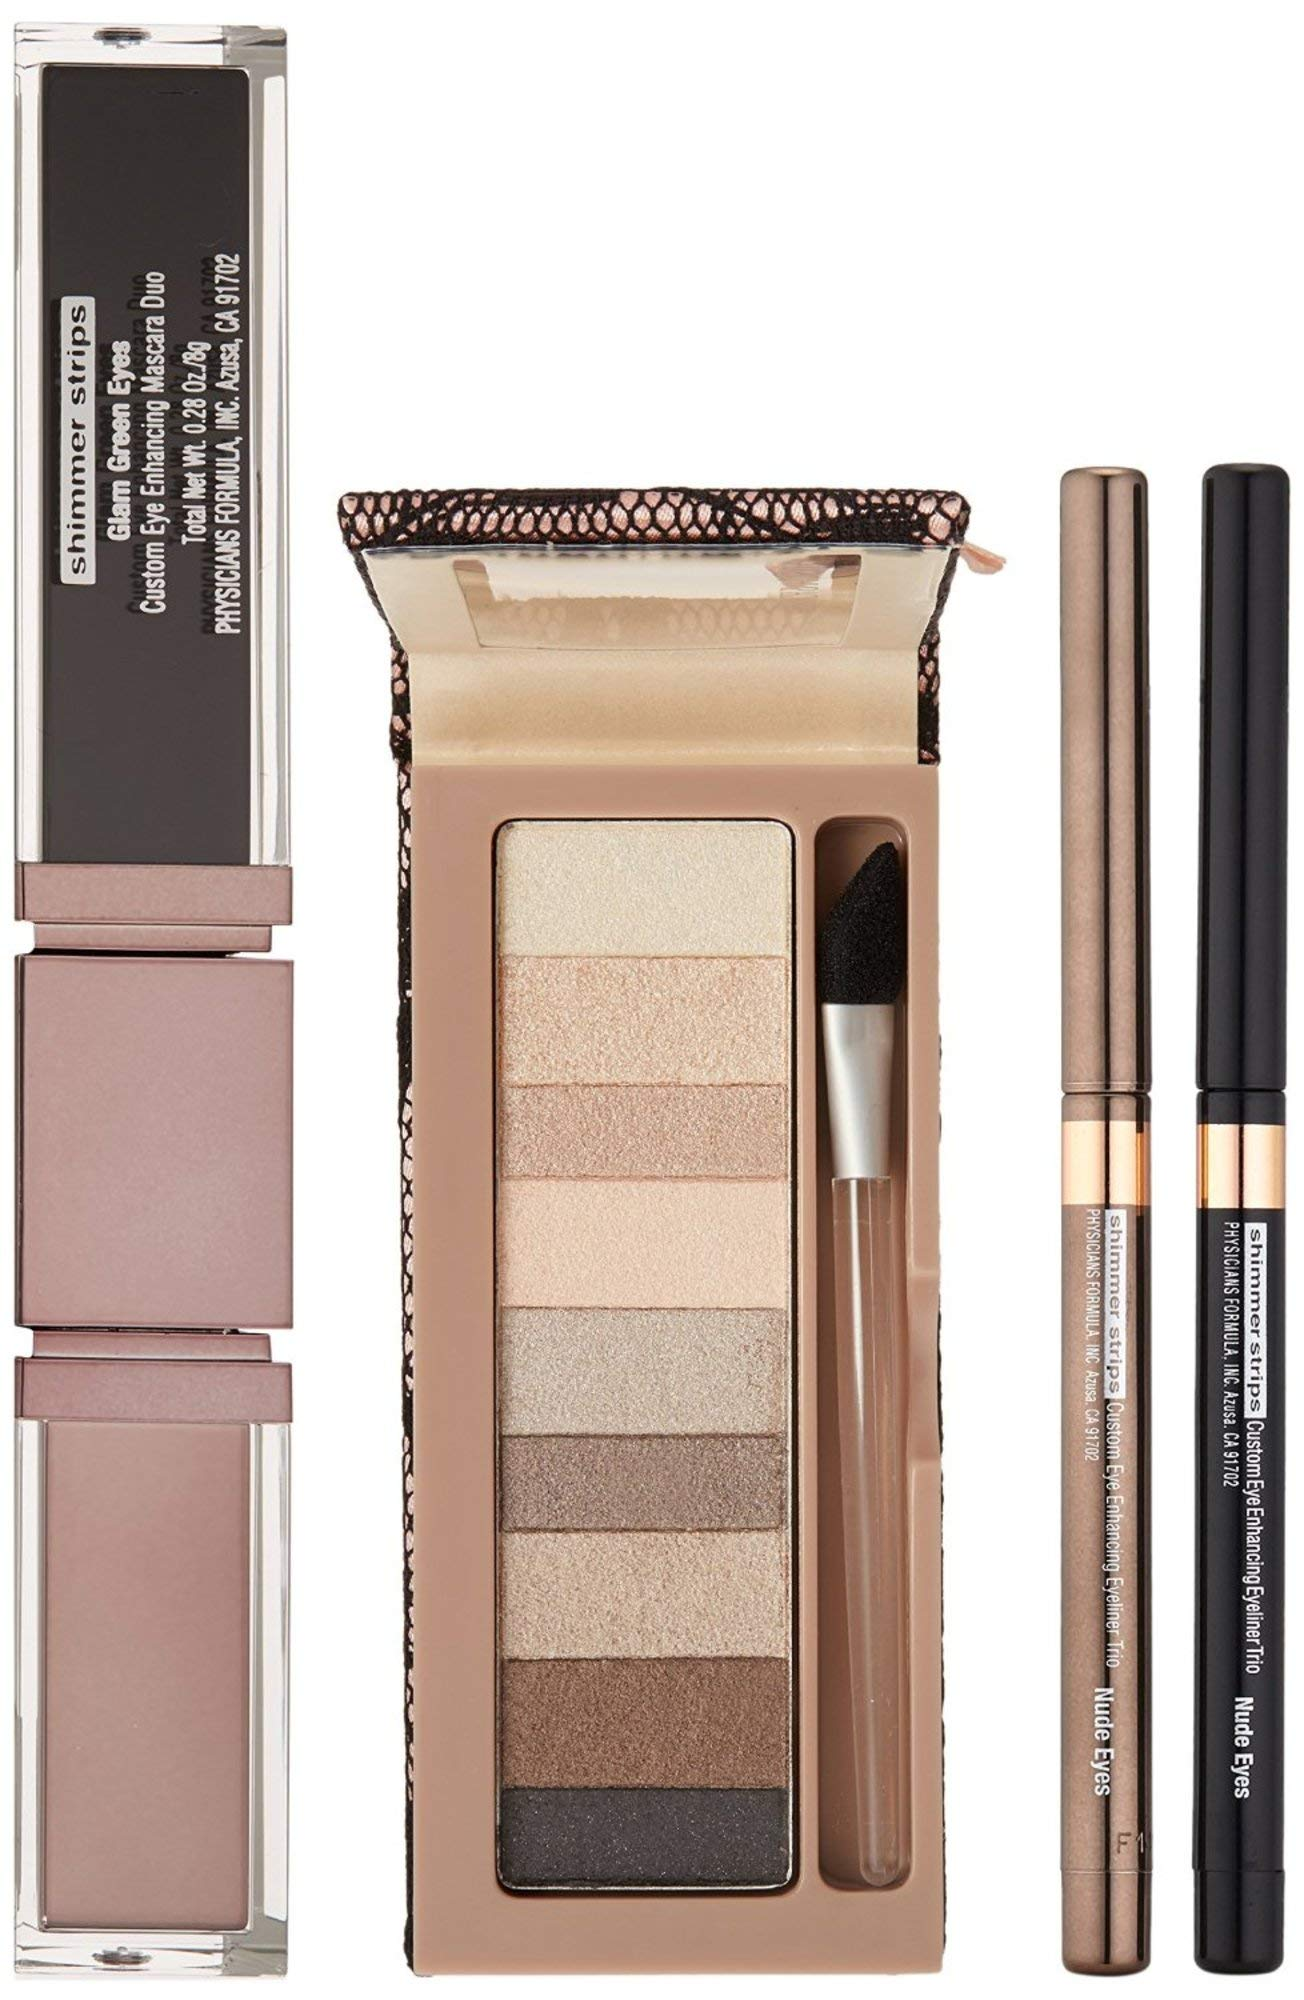 Physicians Formula Shimmer Strips Custom Eye Enhancing Kit with Eyeshadow, Eyeliner & Mascara, Nude